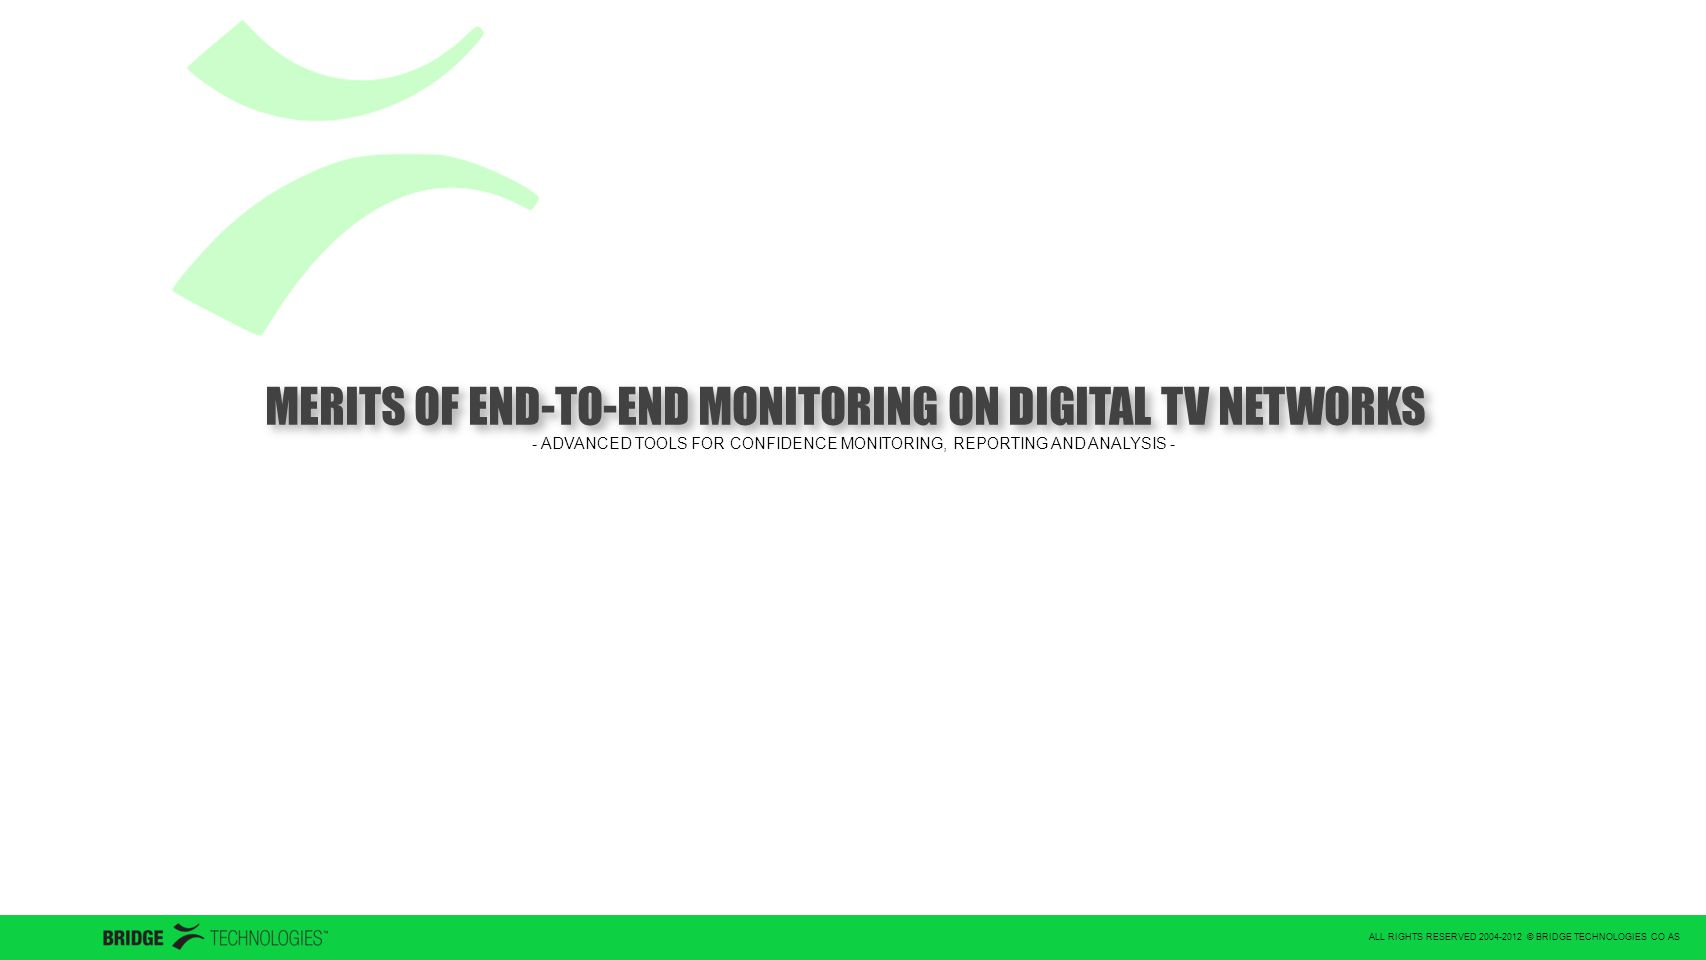 ALL RIGHTS RESERVED 2004-2012 © BRIDGE TECHNOLOGIES CO AS MERITS OF END-TO-END MONITORING ON DIGITAL TV NETWORKS - ADVANCED TOOLS FOR CONFIDENCE MONITORING, REPORTING AND ANALYSIS -